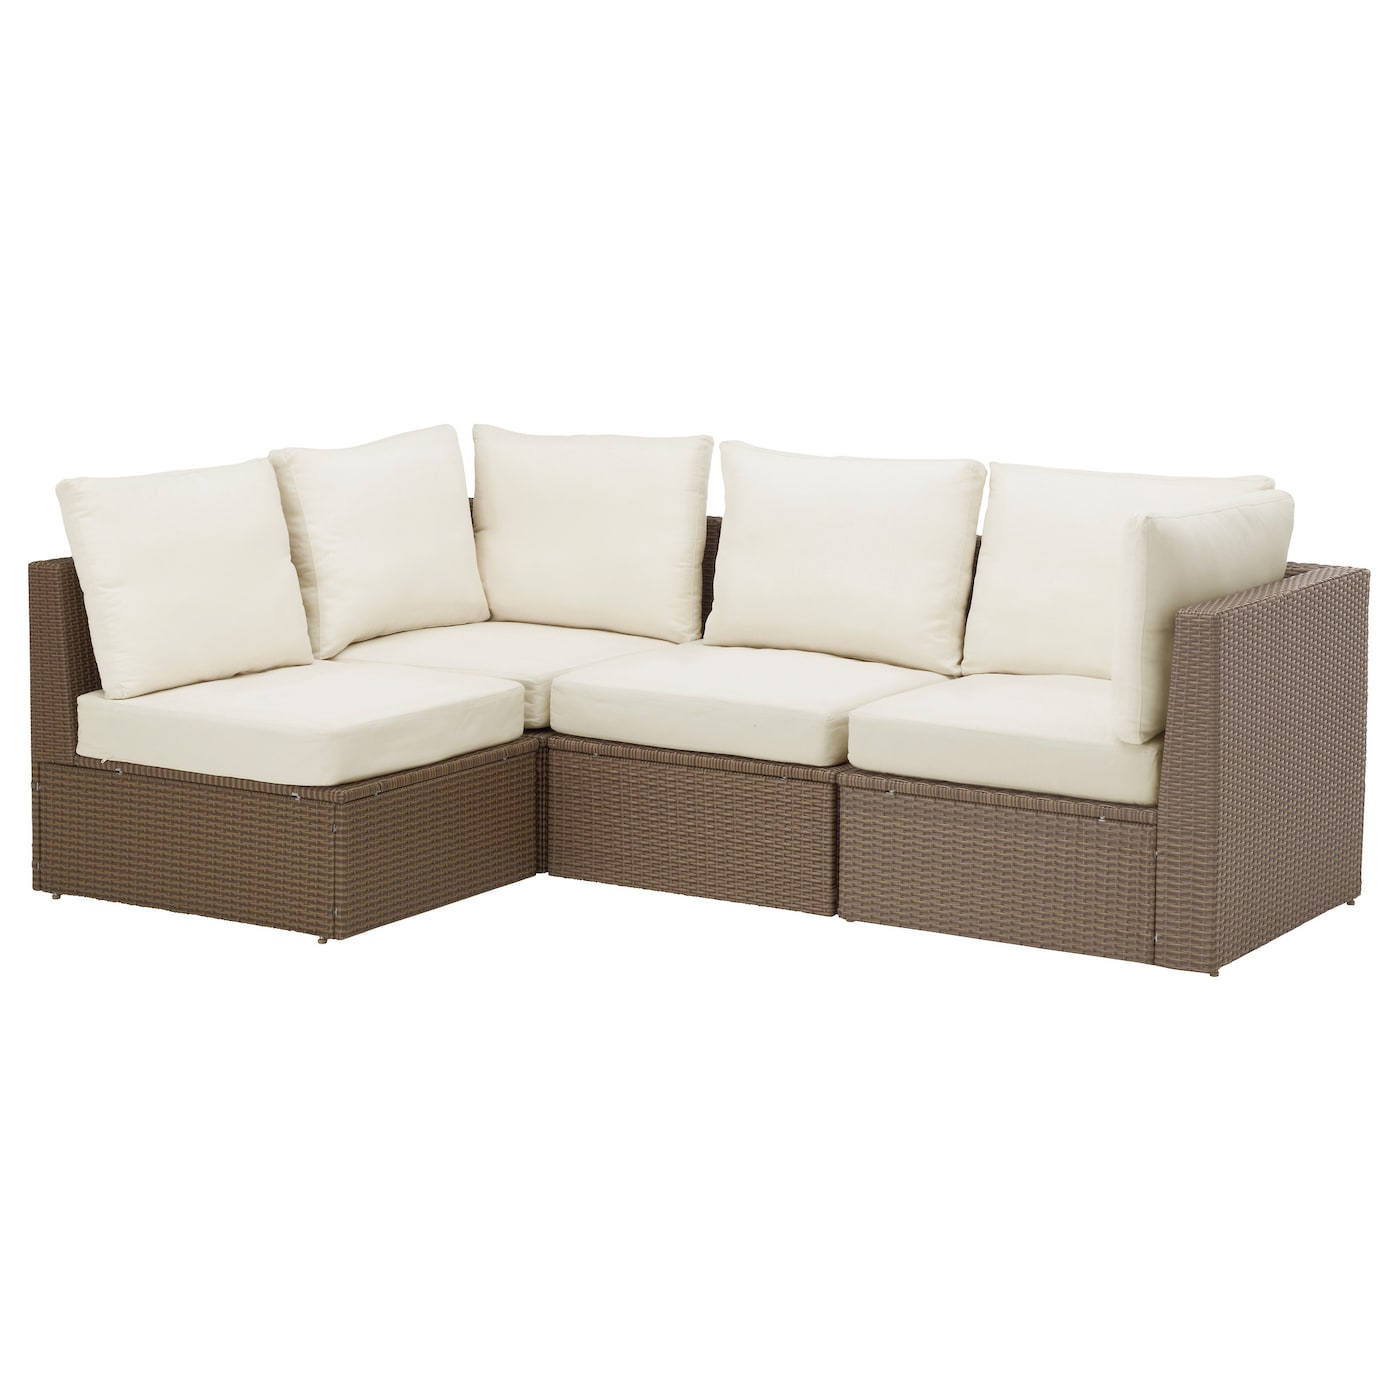 arholma corner sofa 3 1 outdoor brown beige 141 217x76x66